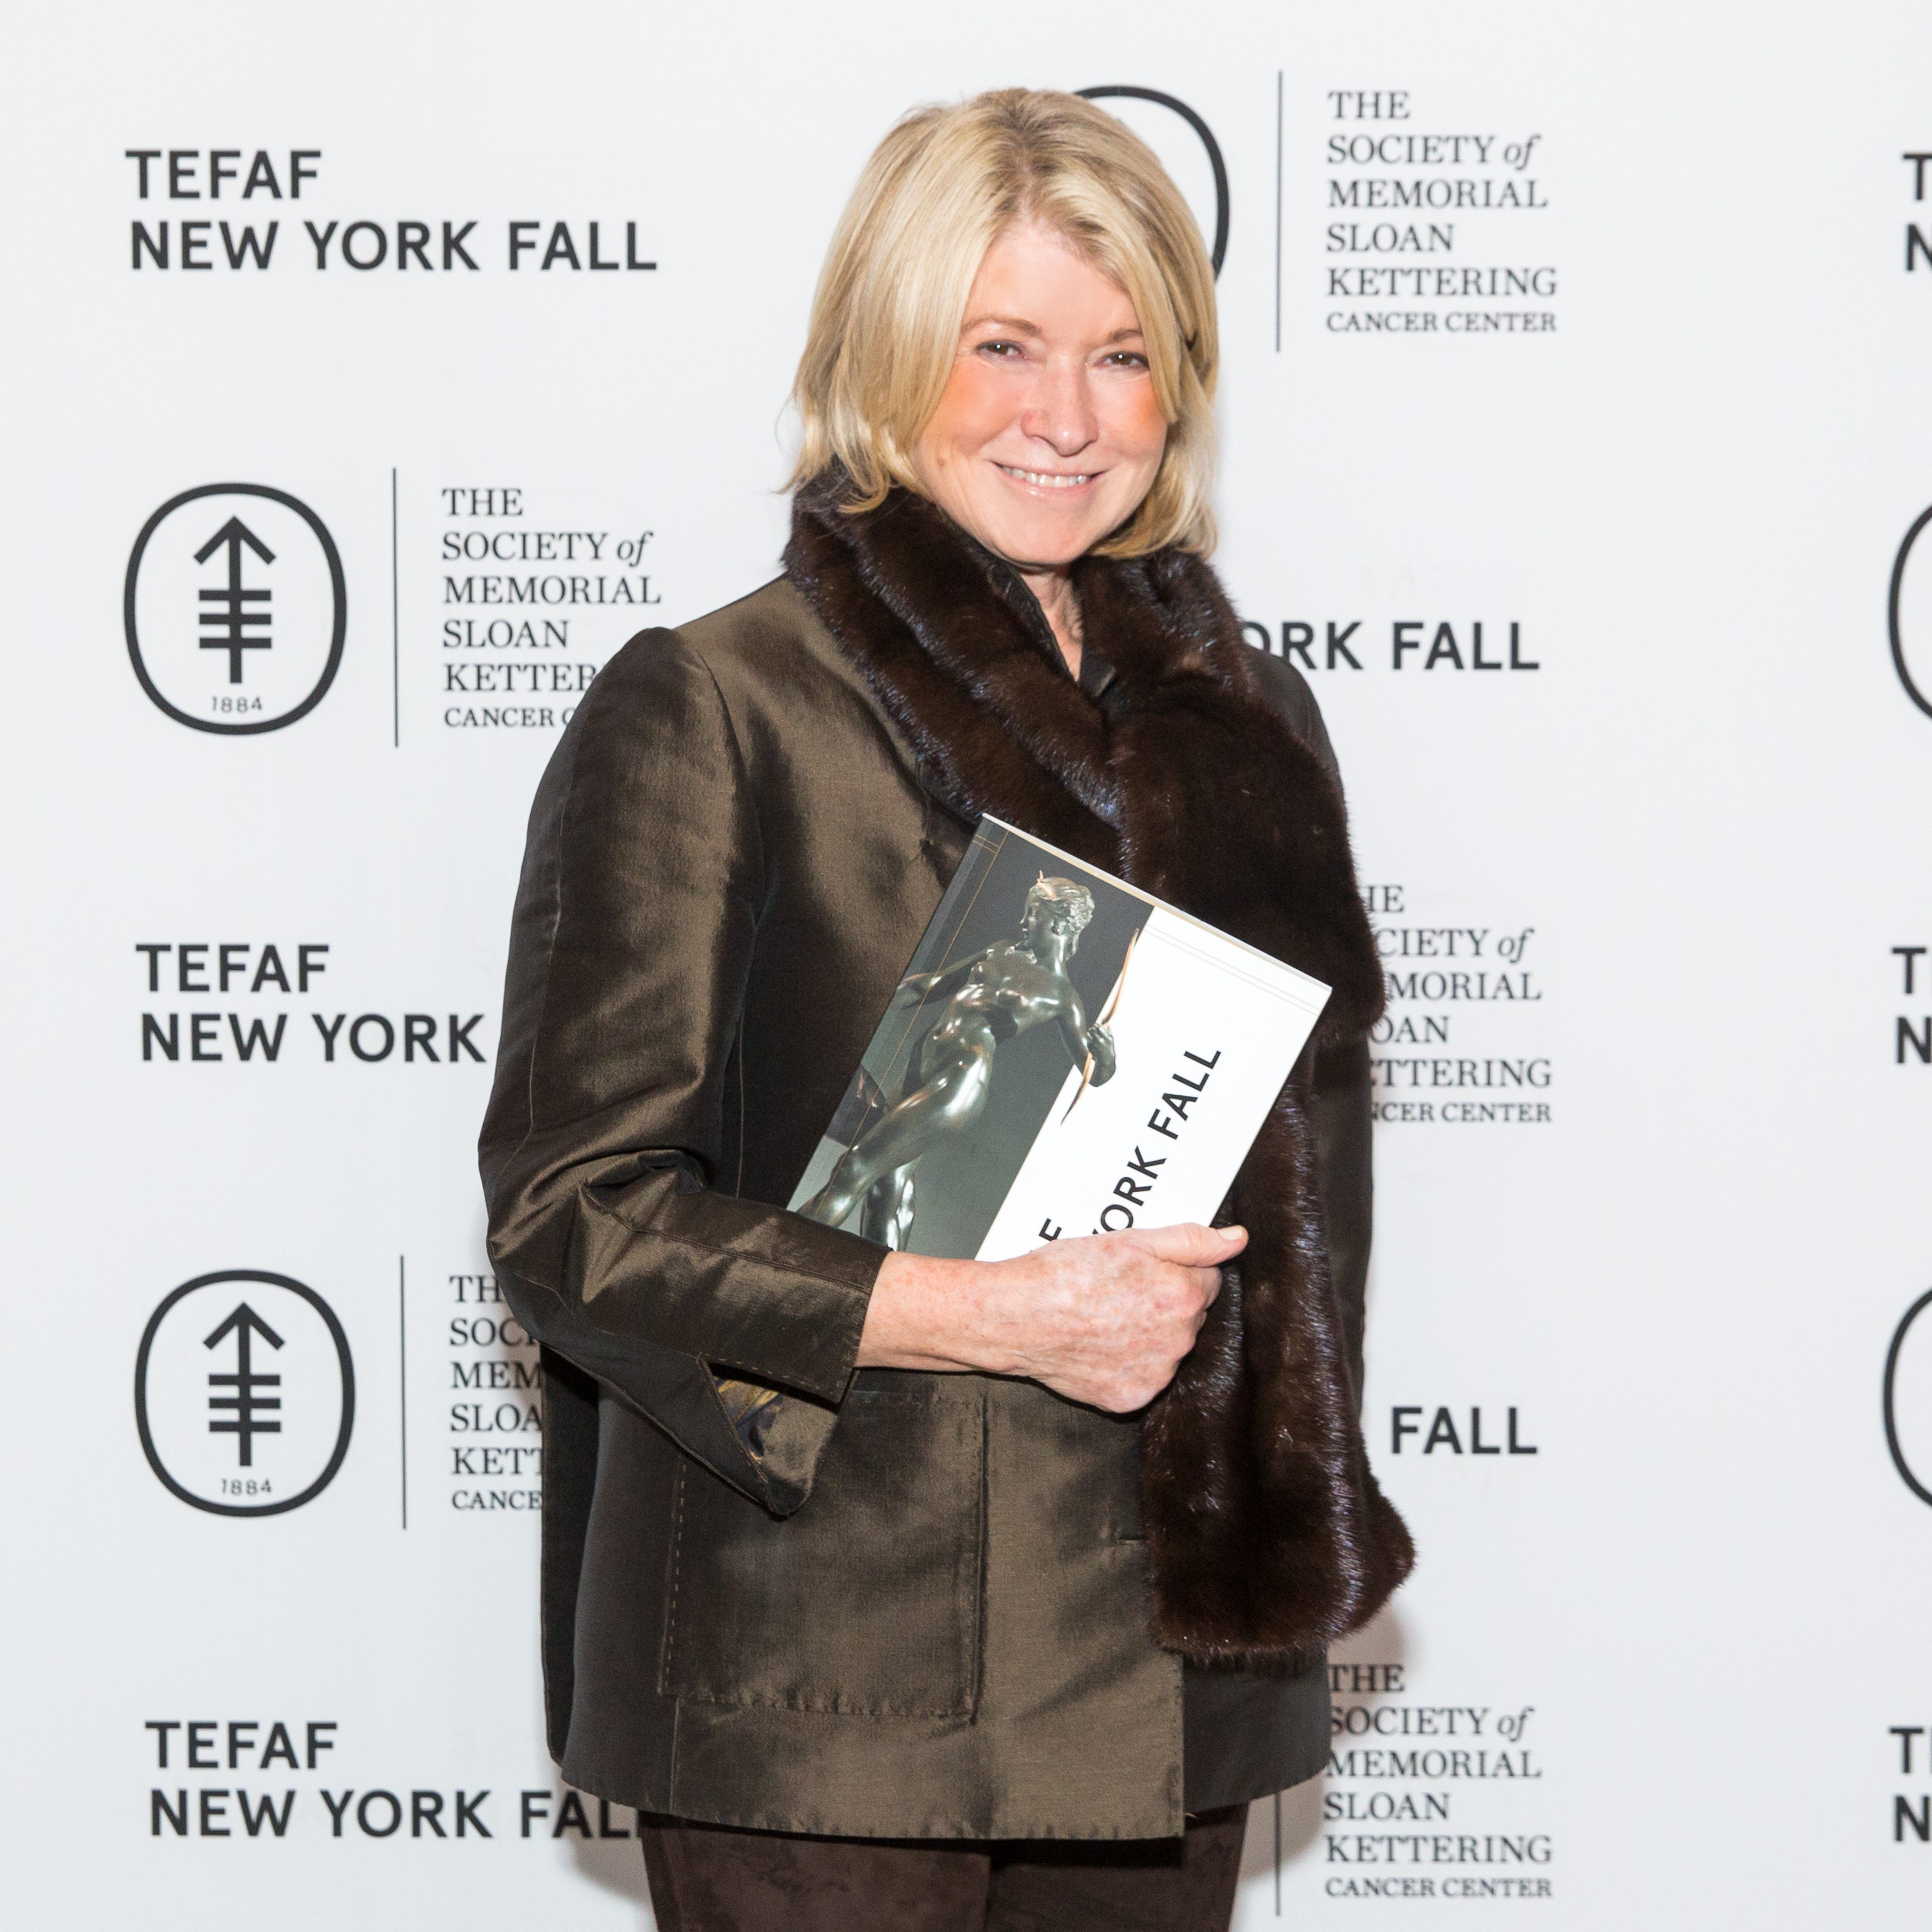 The Society of MSK Hosts : The Opening Night of TEFAF New York Fall